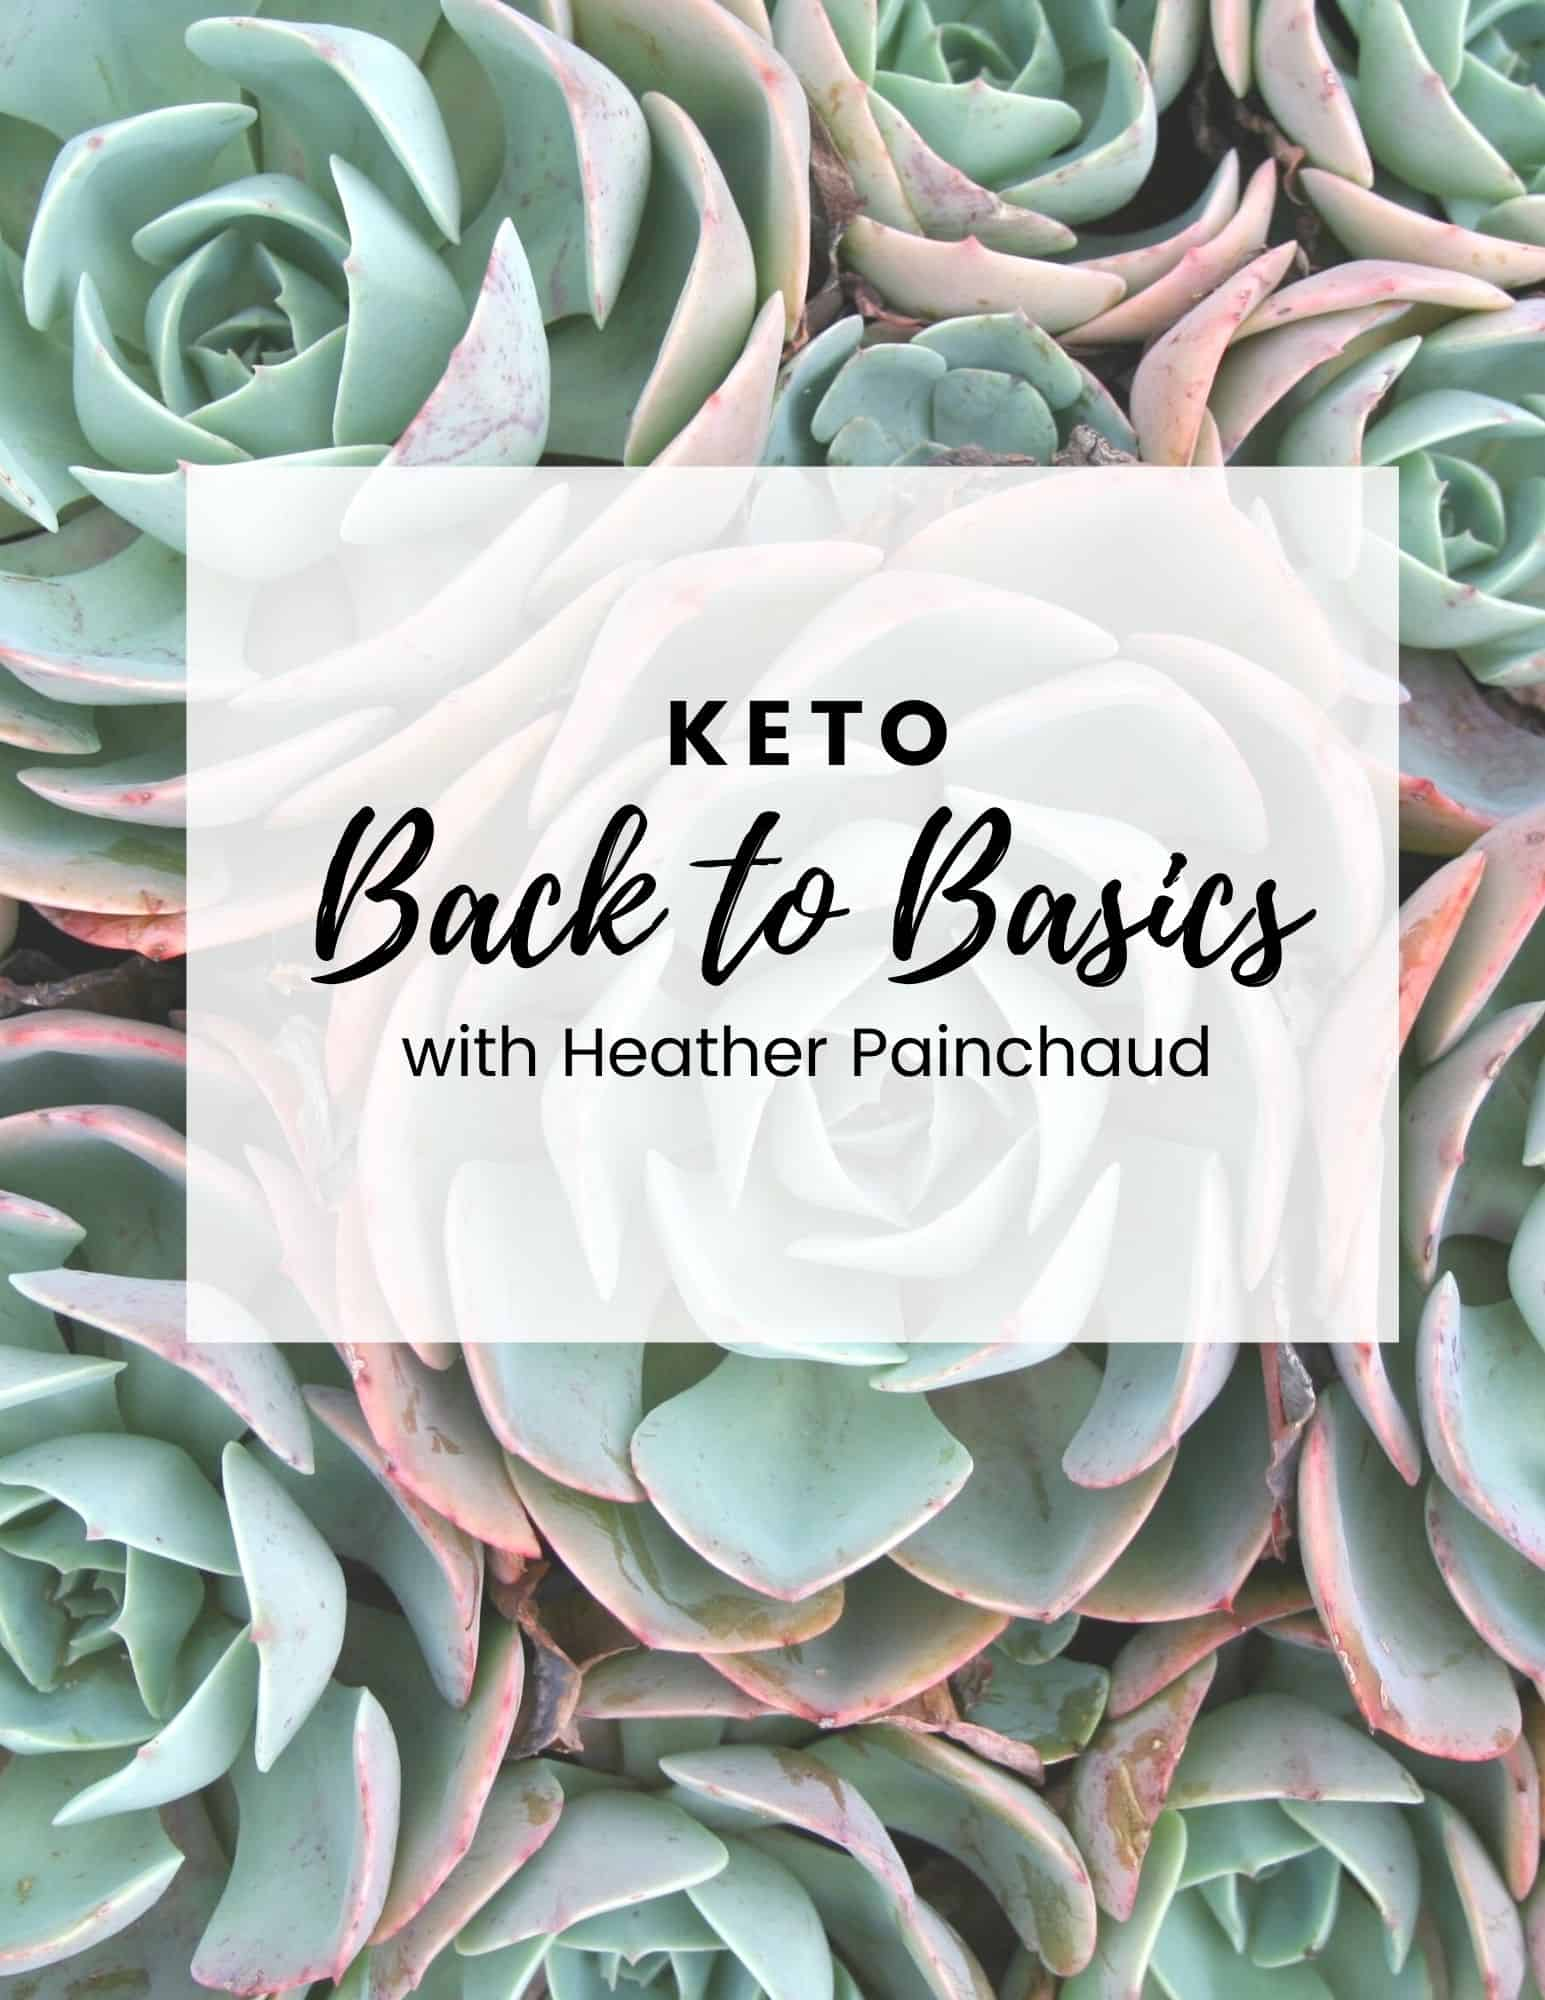 keto back to basics workbook title